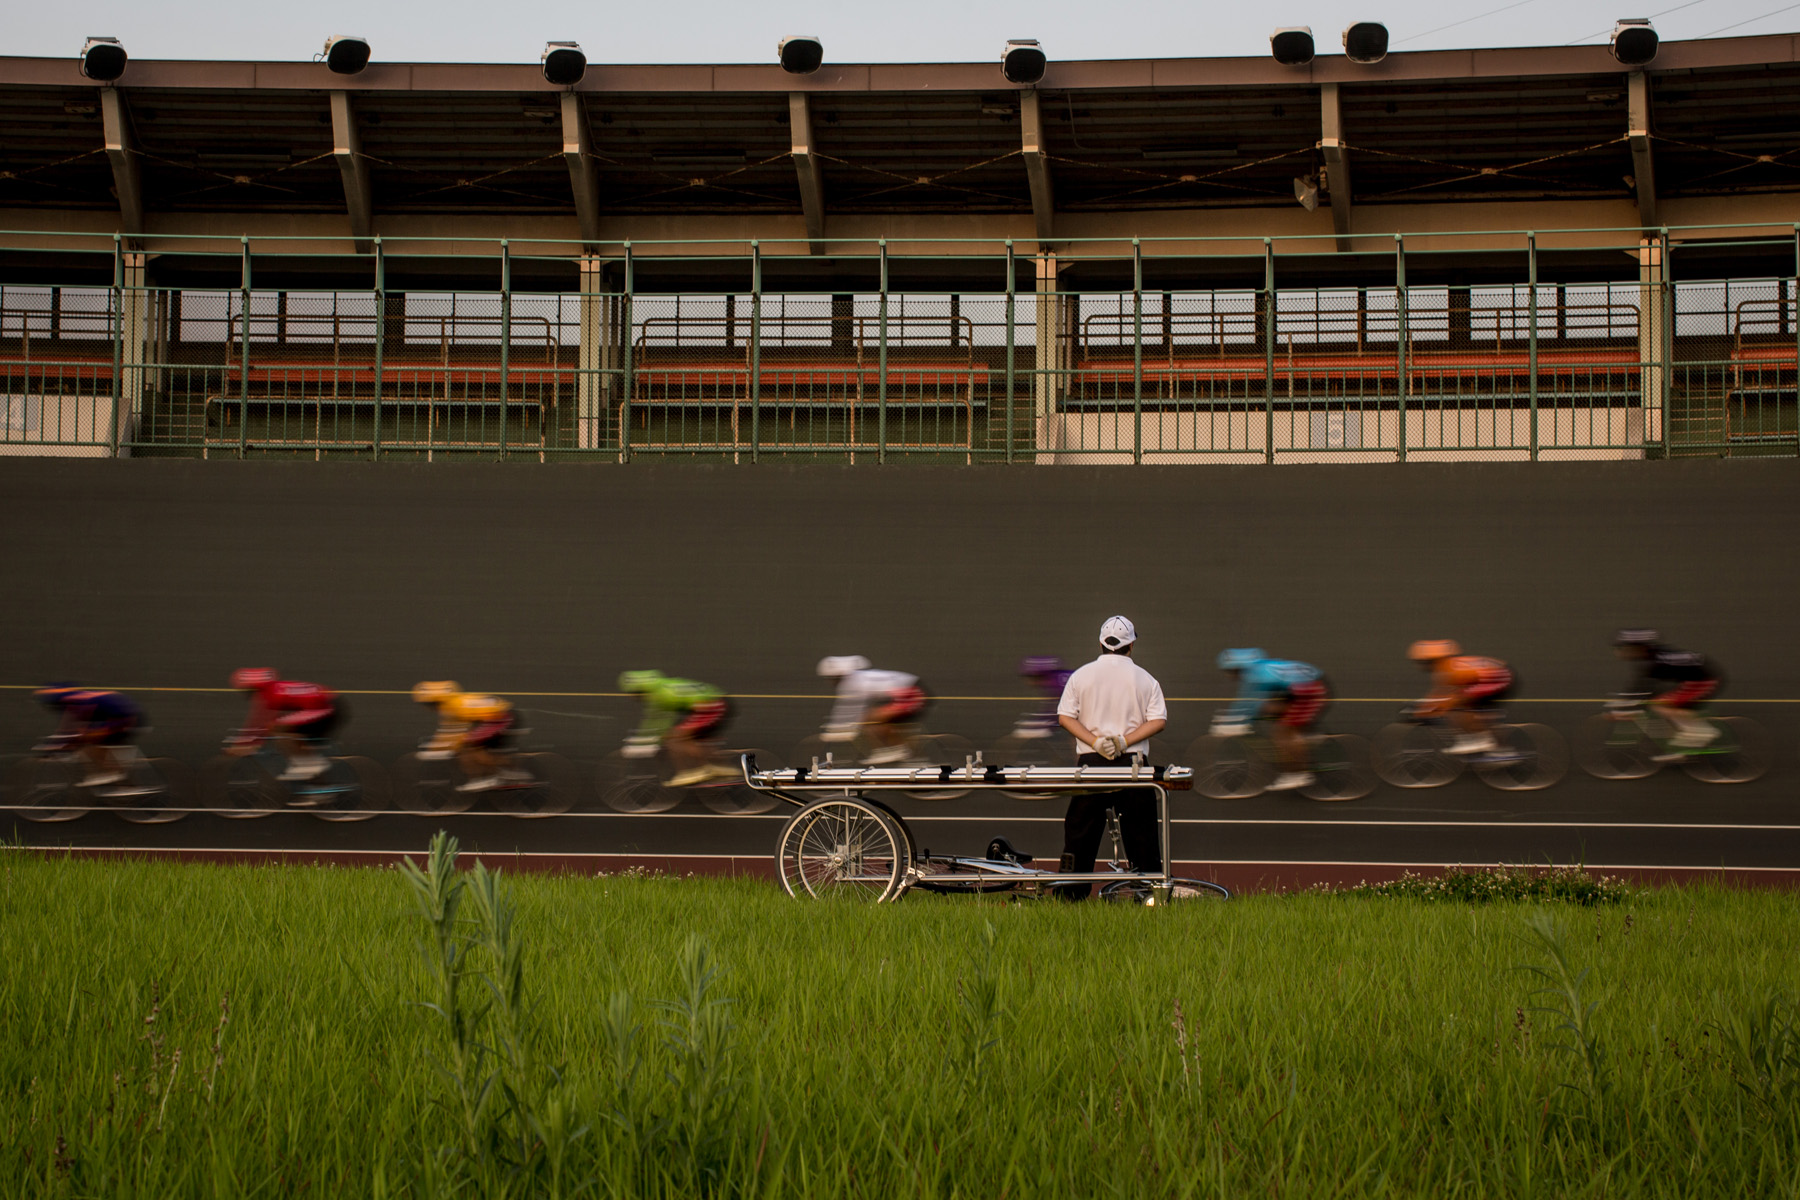 Betting on bike racing: Keirin culture in Japan